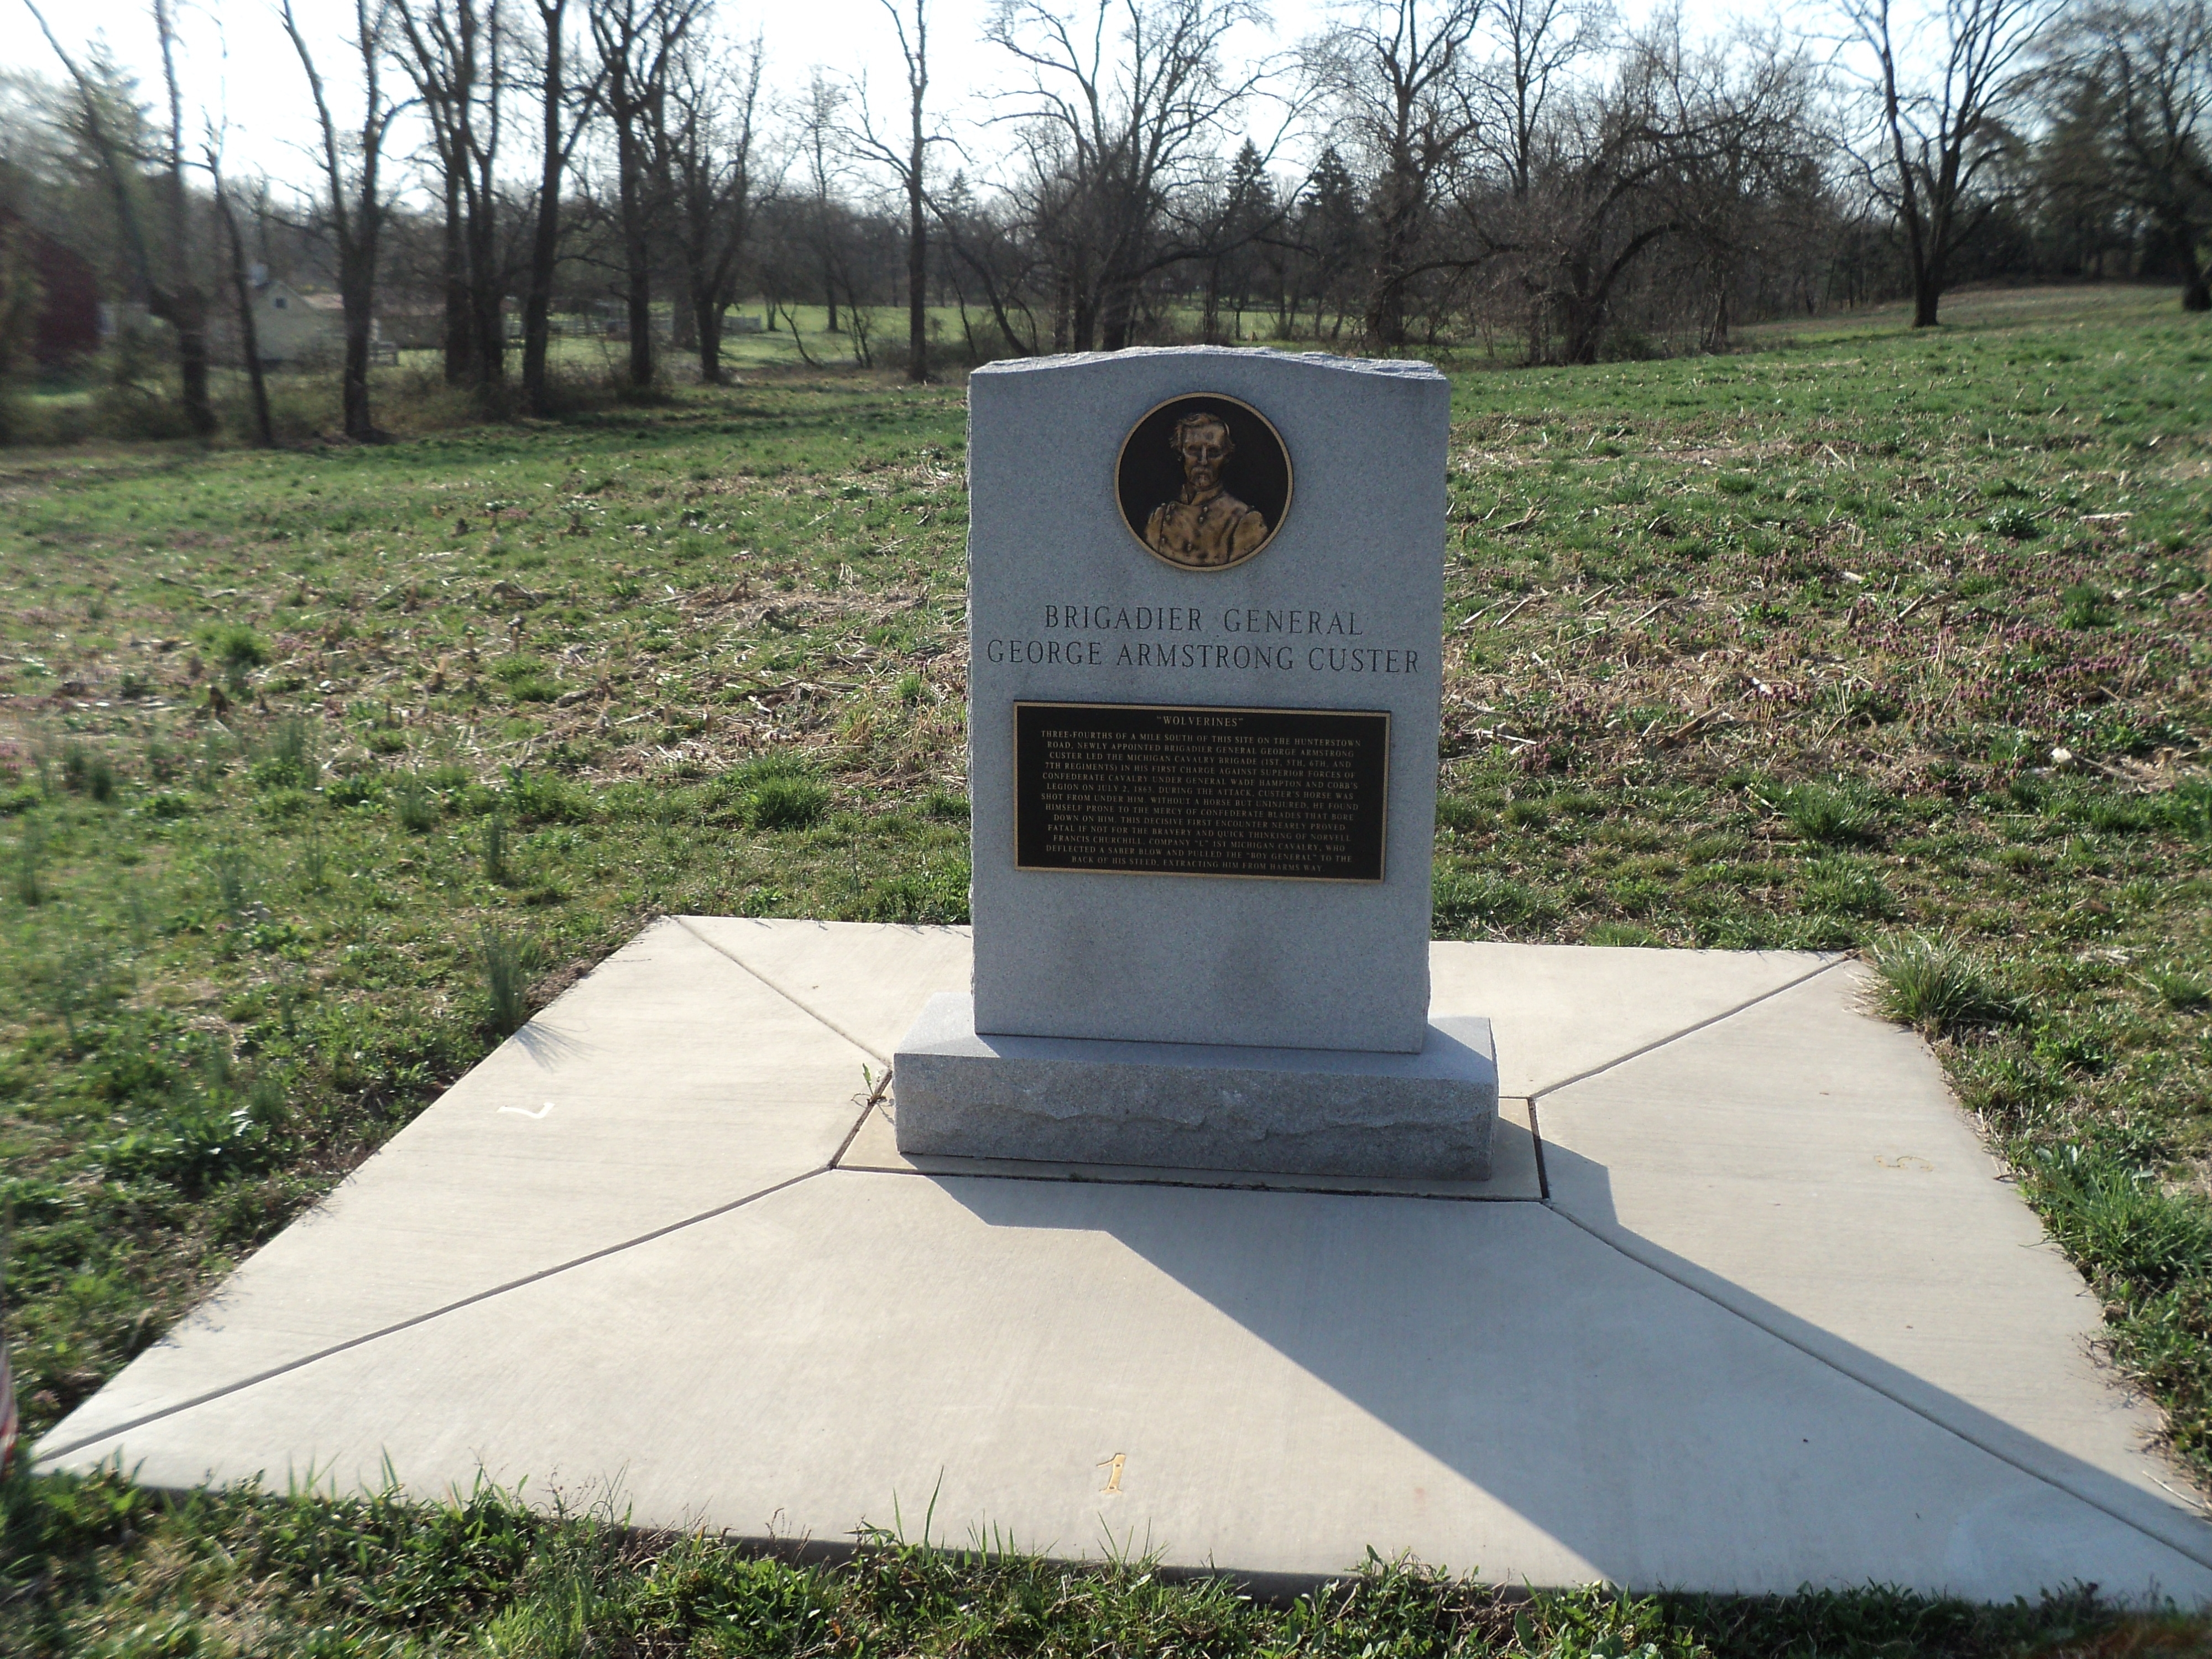 Brigadier General George Armstrong Custer Marker